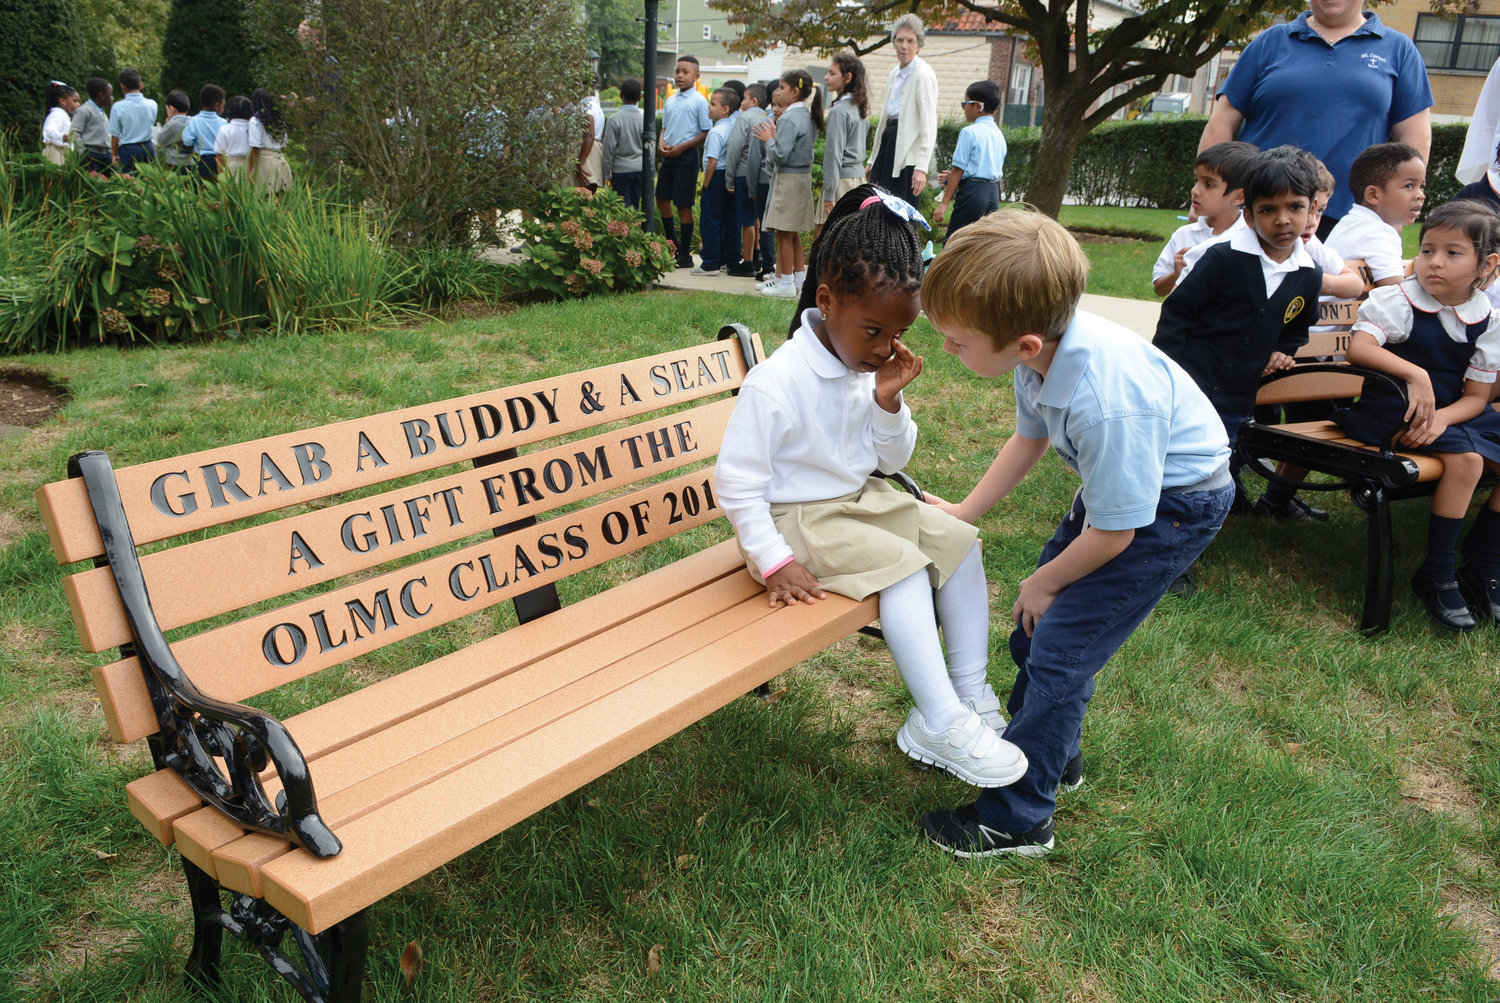 Countess Mmuo and Jackson Masella, first-graders at Our Lady of Mount Carmel School in Elmsford, top, demonstrate the concept behind a buddy bench installed on their school playground.